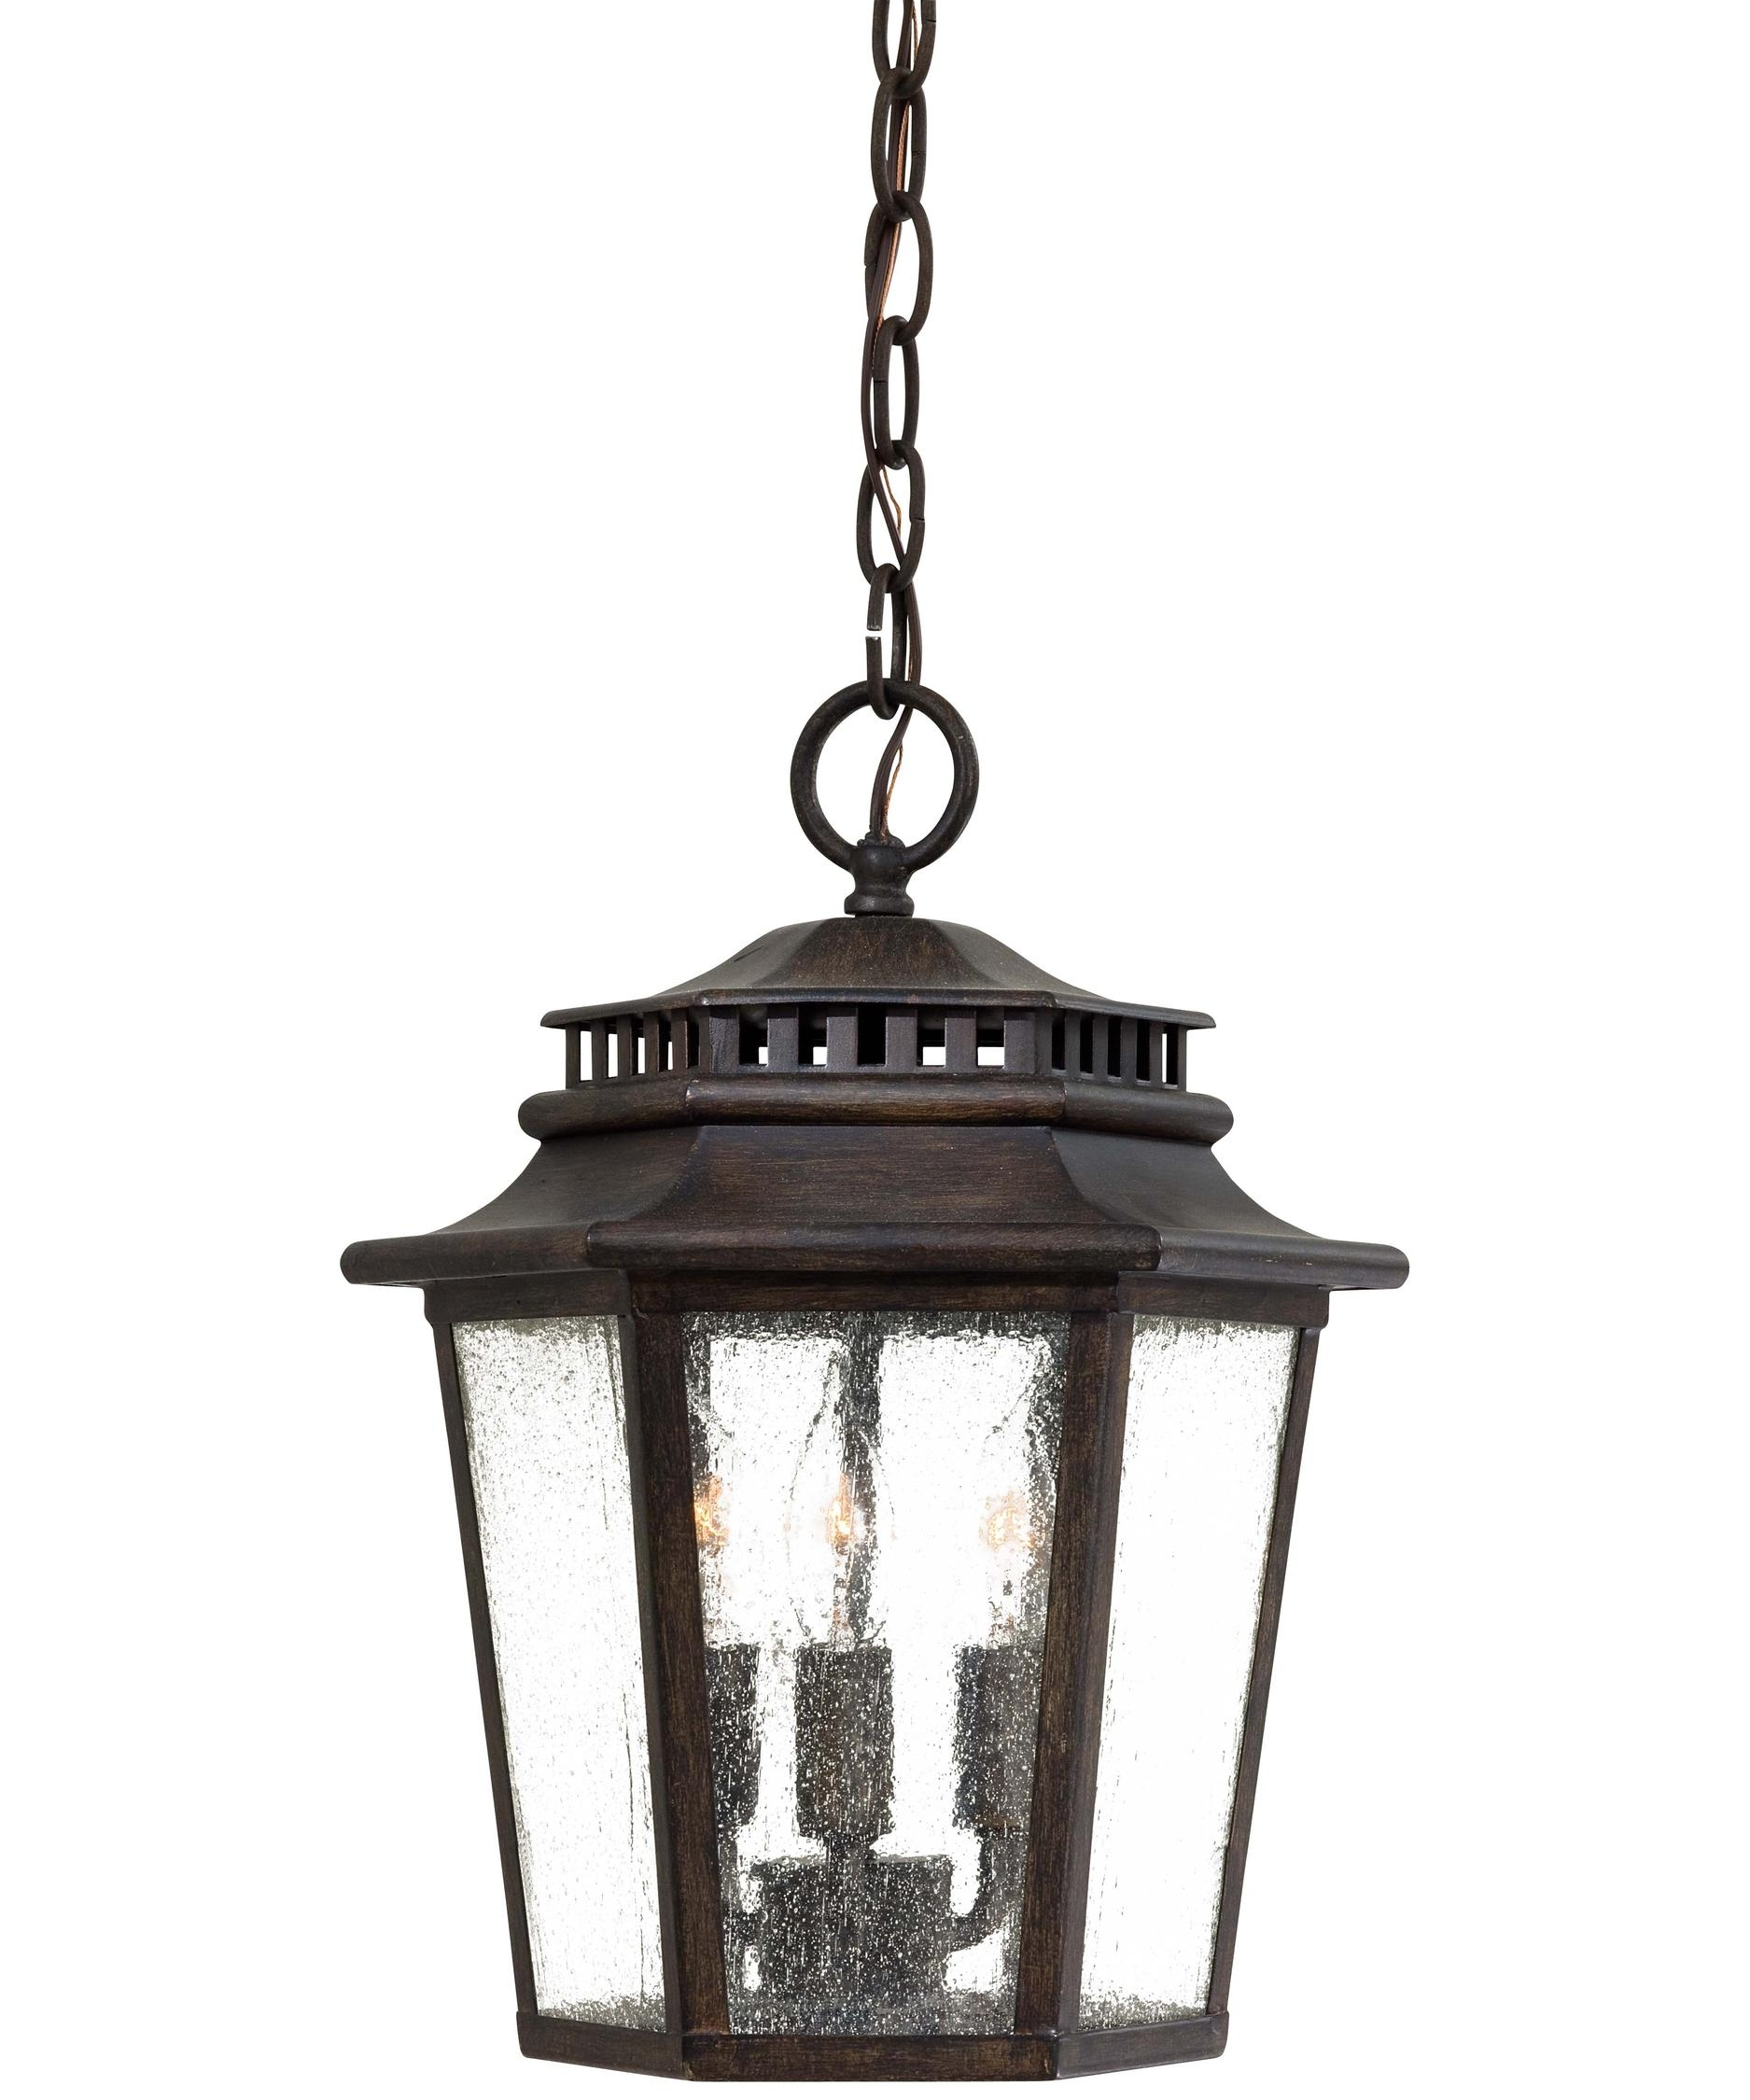 Large Hanging Outdoor Lights – Outdoor Designs Pertaining To Outdoor Hanging Lights For Porch (View 6 of 15)